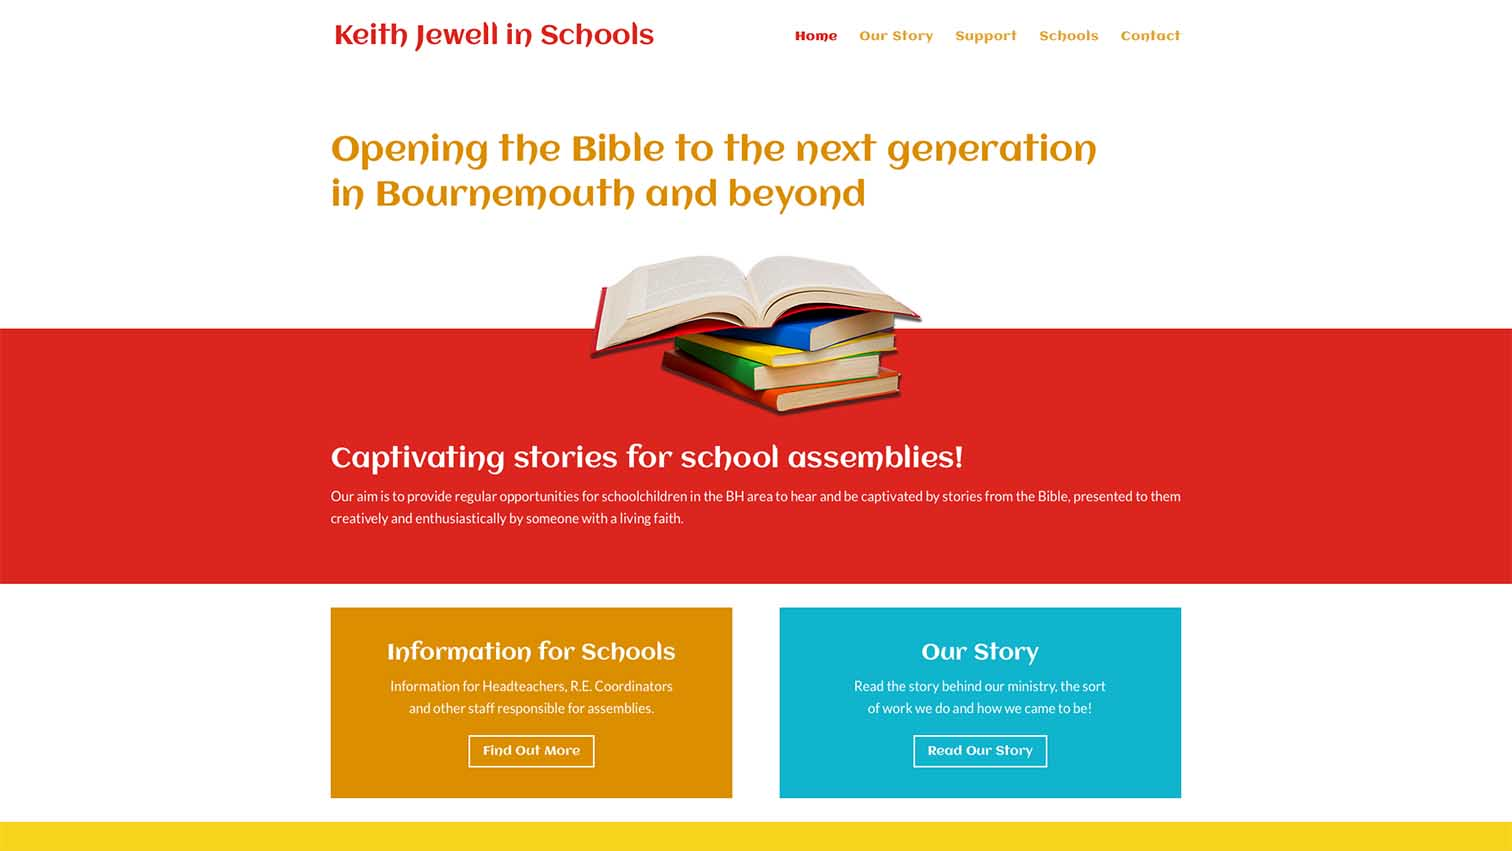 Christian Schools work charity design website - Be Gallant